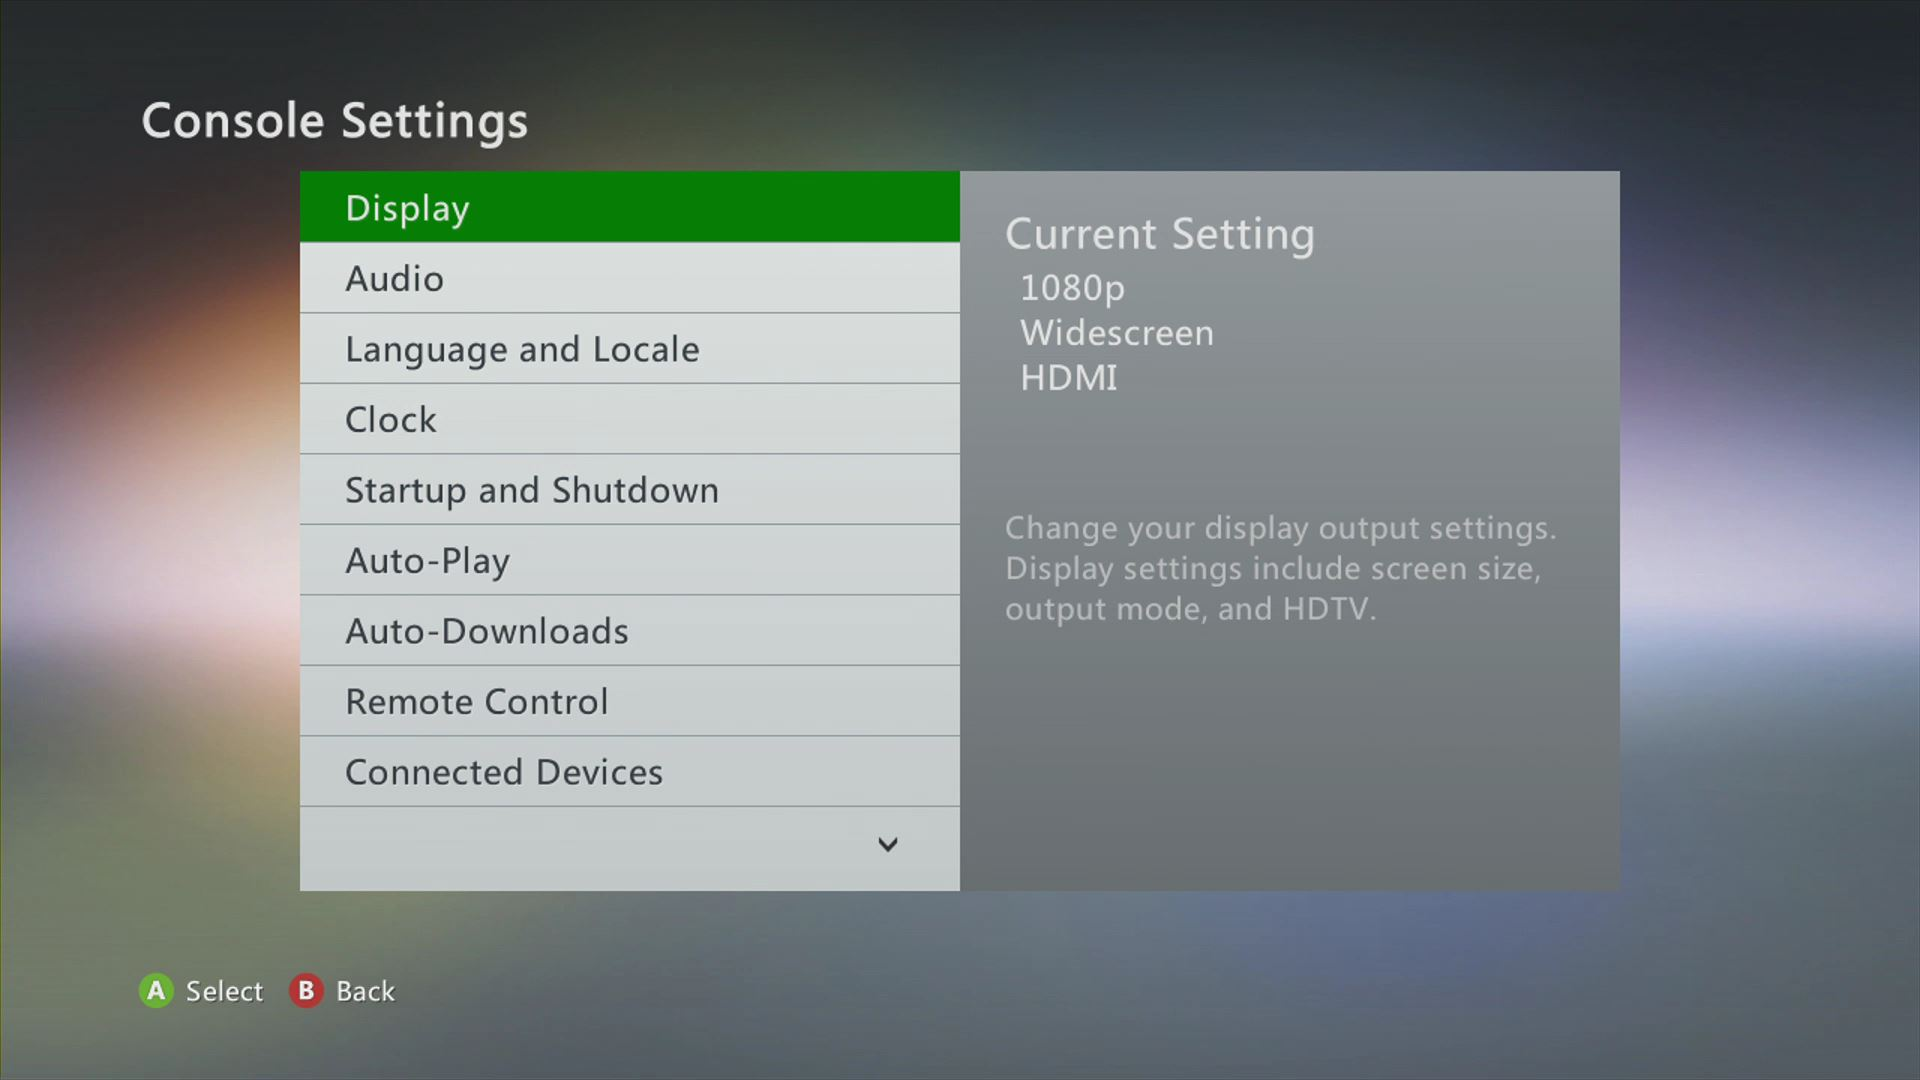 Console Settings, Display